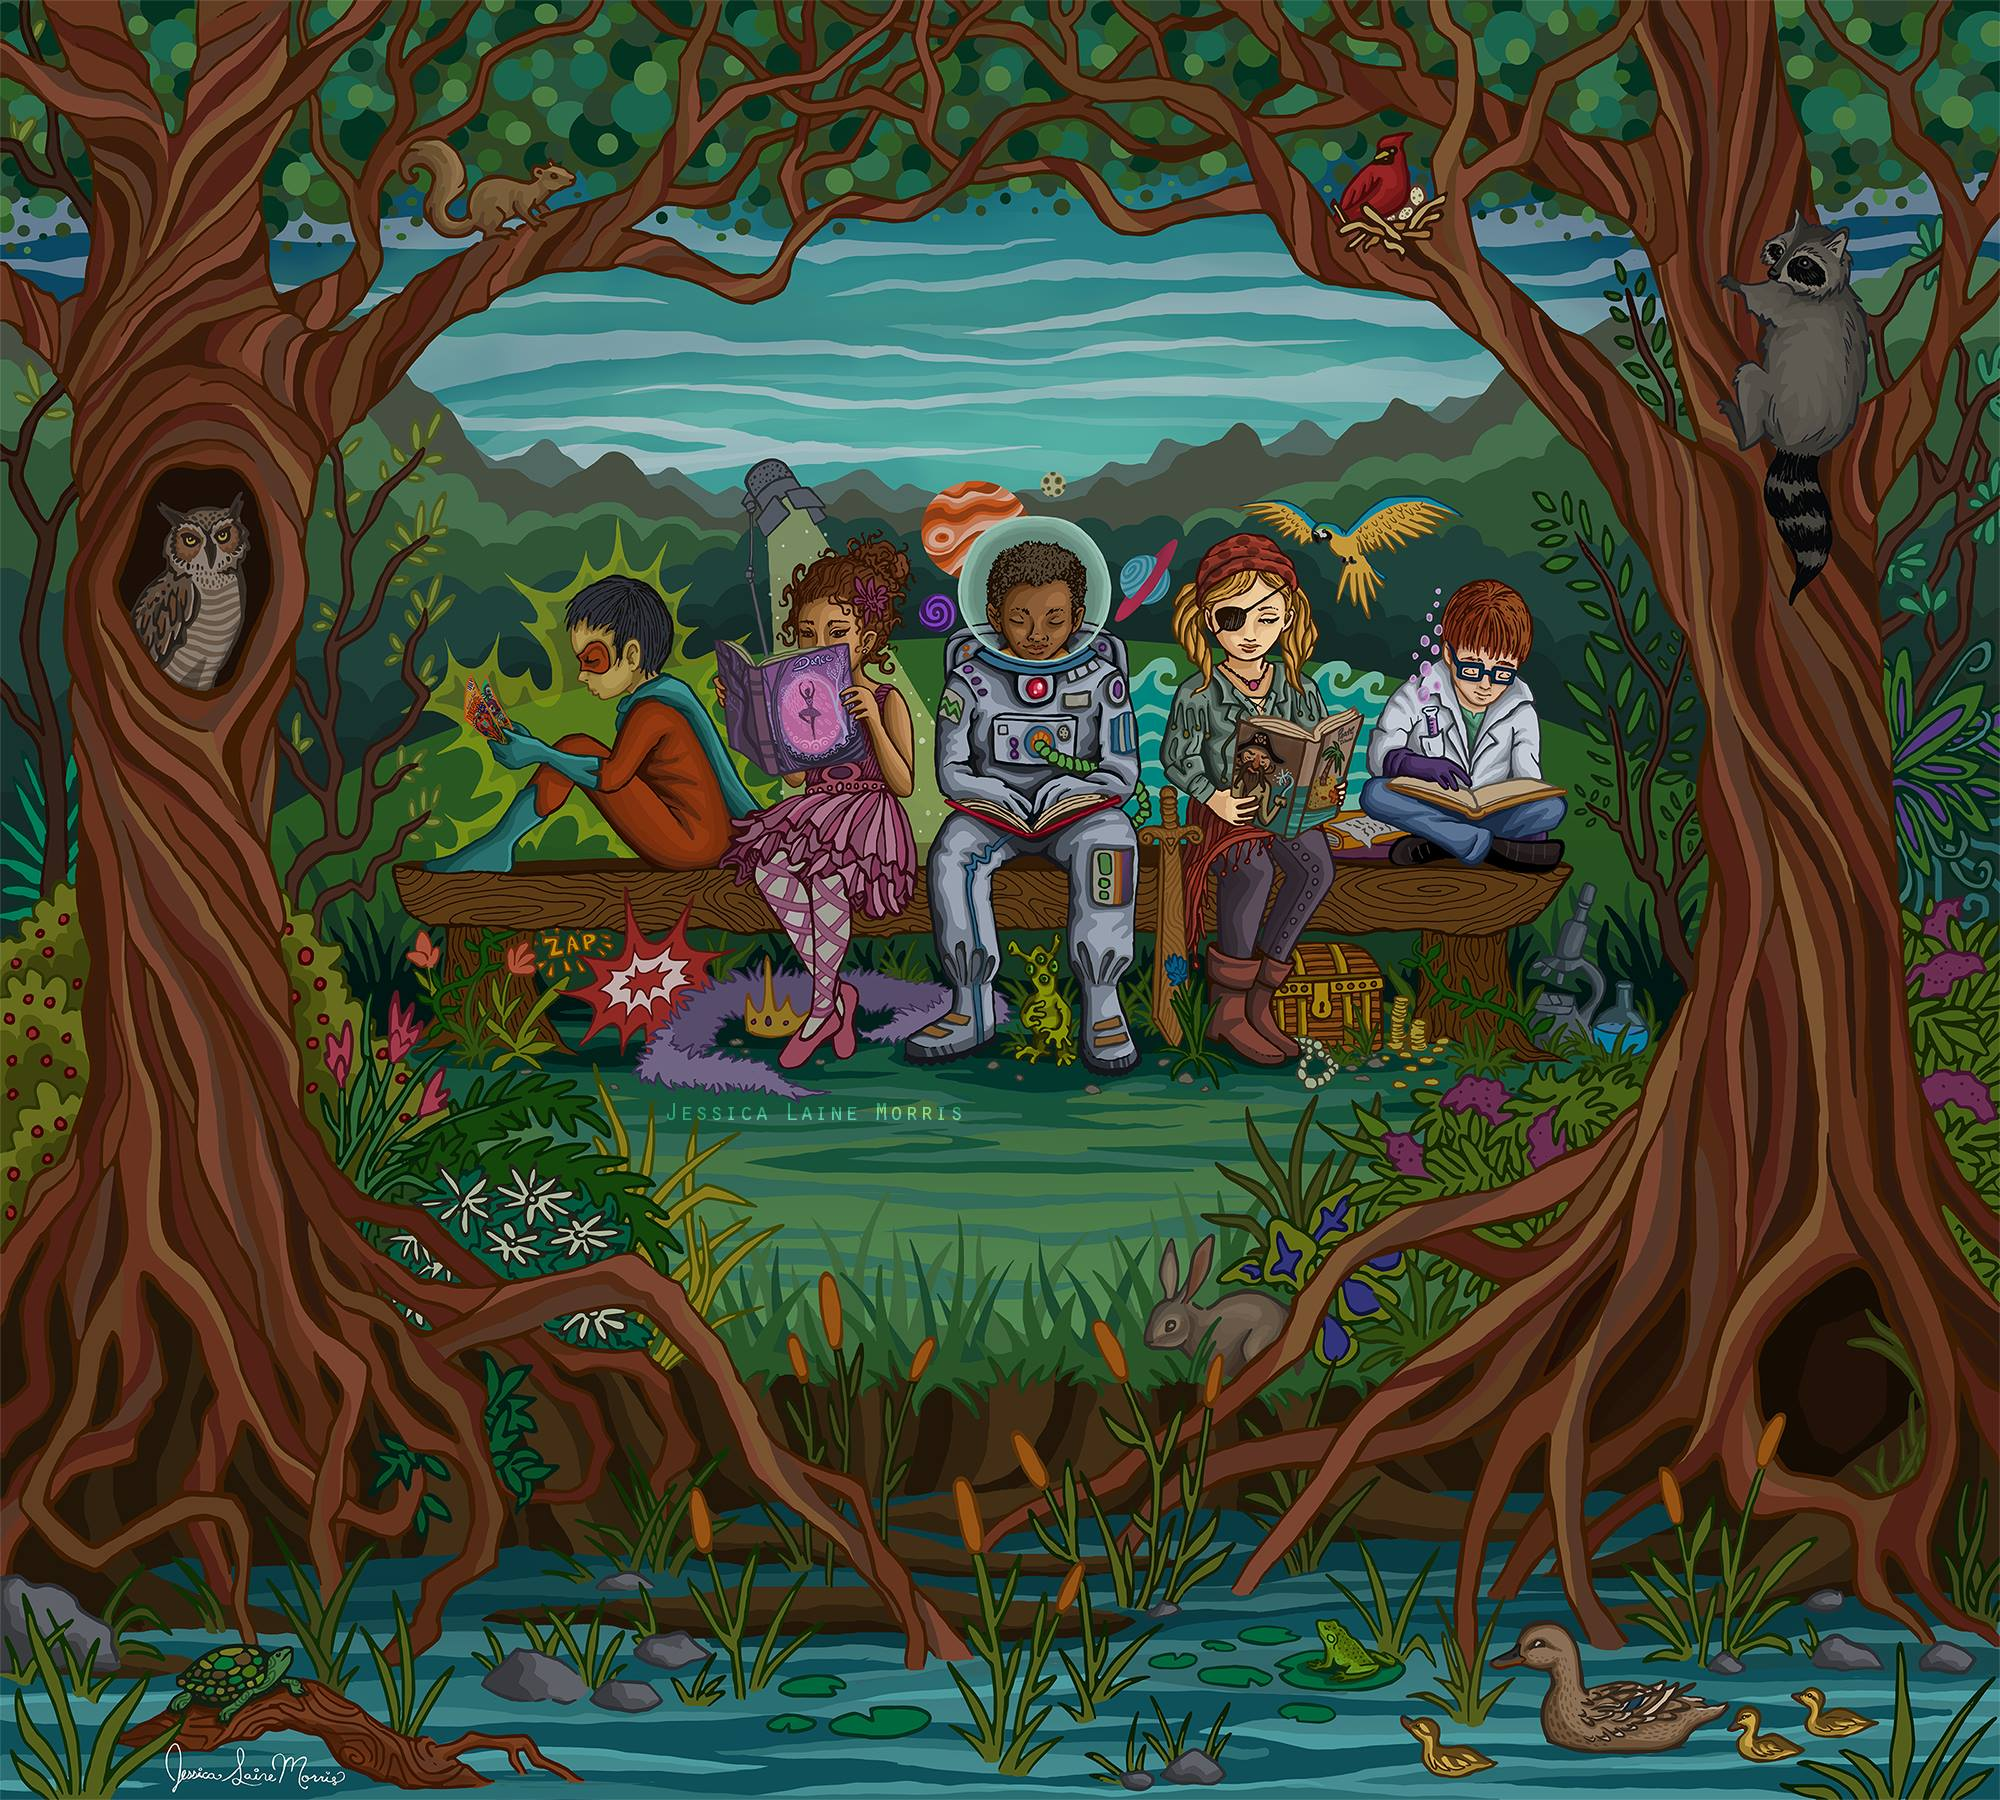 Power of reading and imagination. Brownsburg Public Library. Childrens book fantasy illustration.